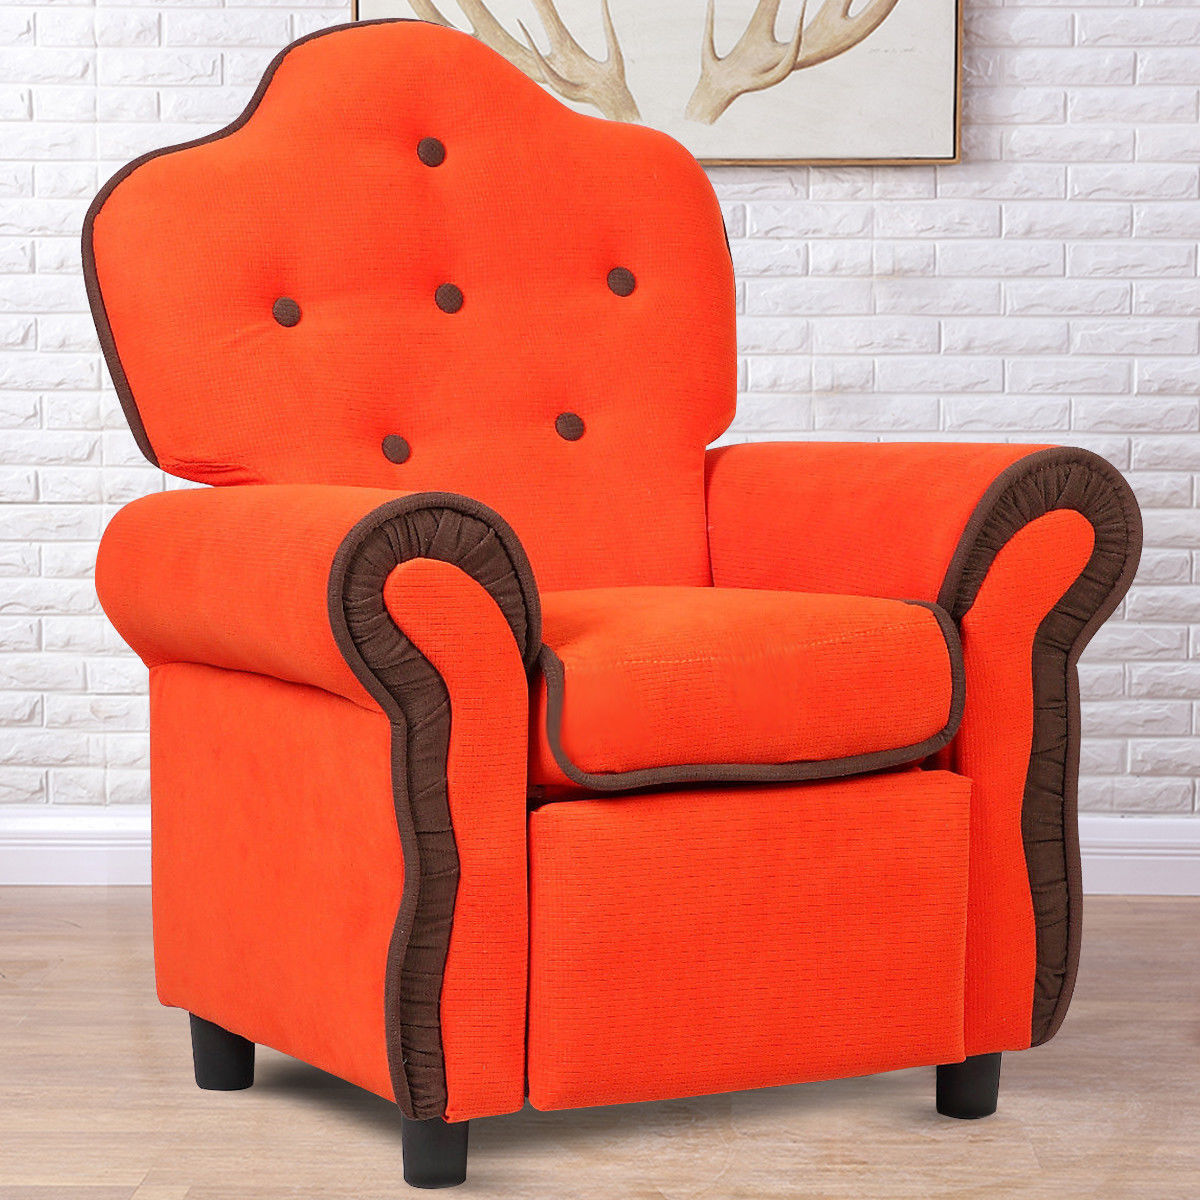 Children Recliner Kids Sofa Chair Couch Living Room Furniture Orange